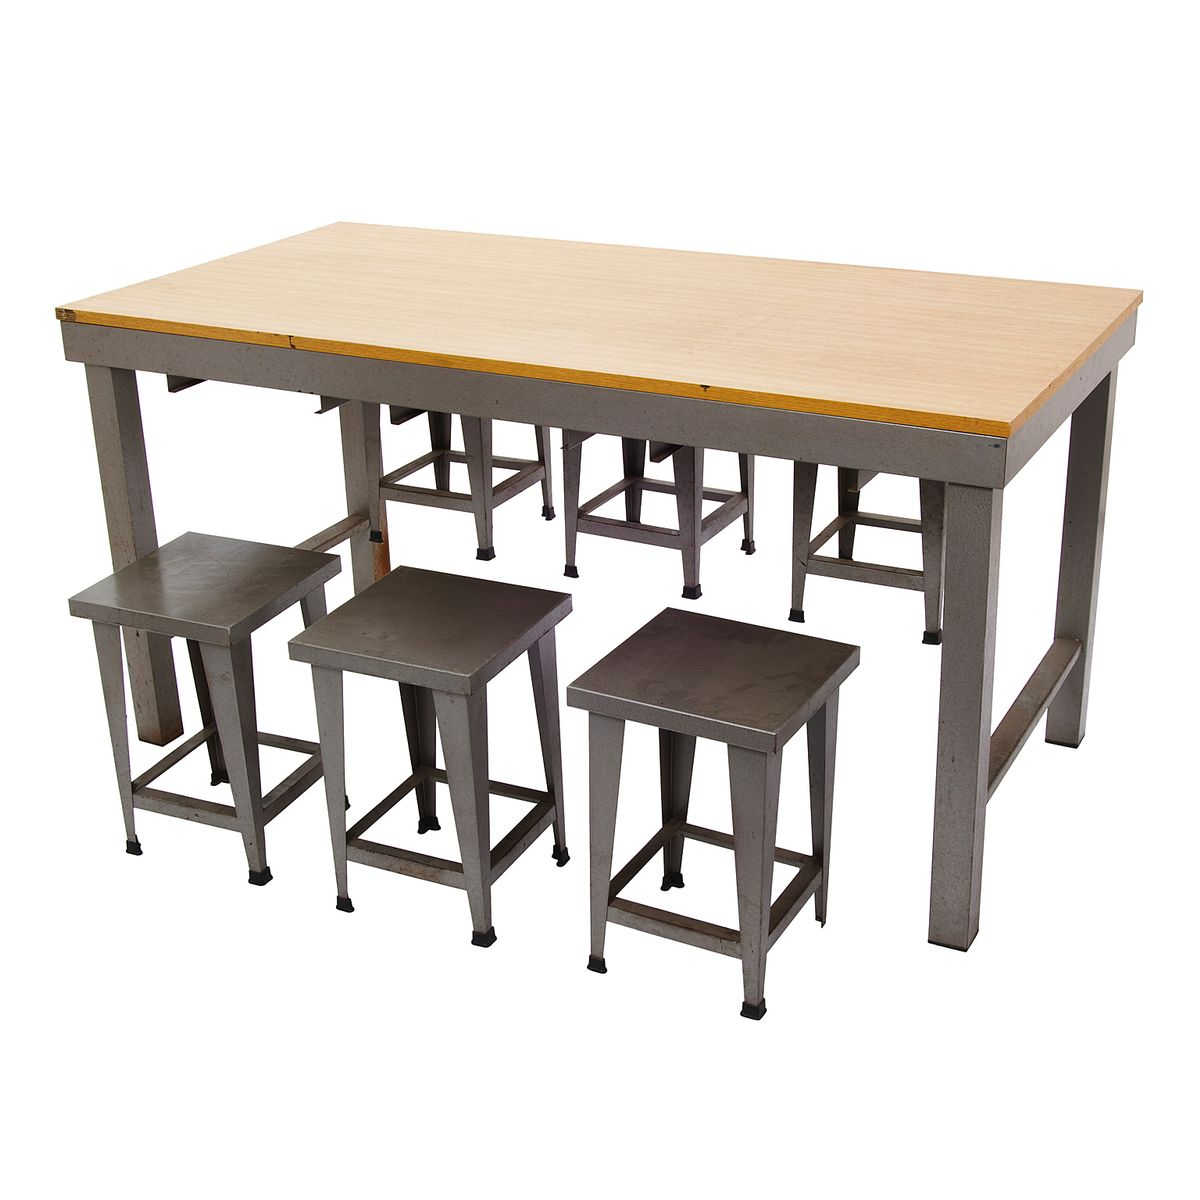 Vintage Industrial Style Table With Stools For Sale At Pamono